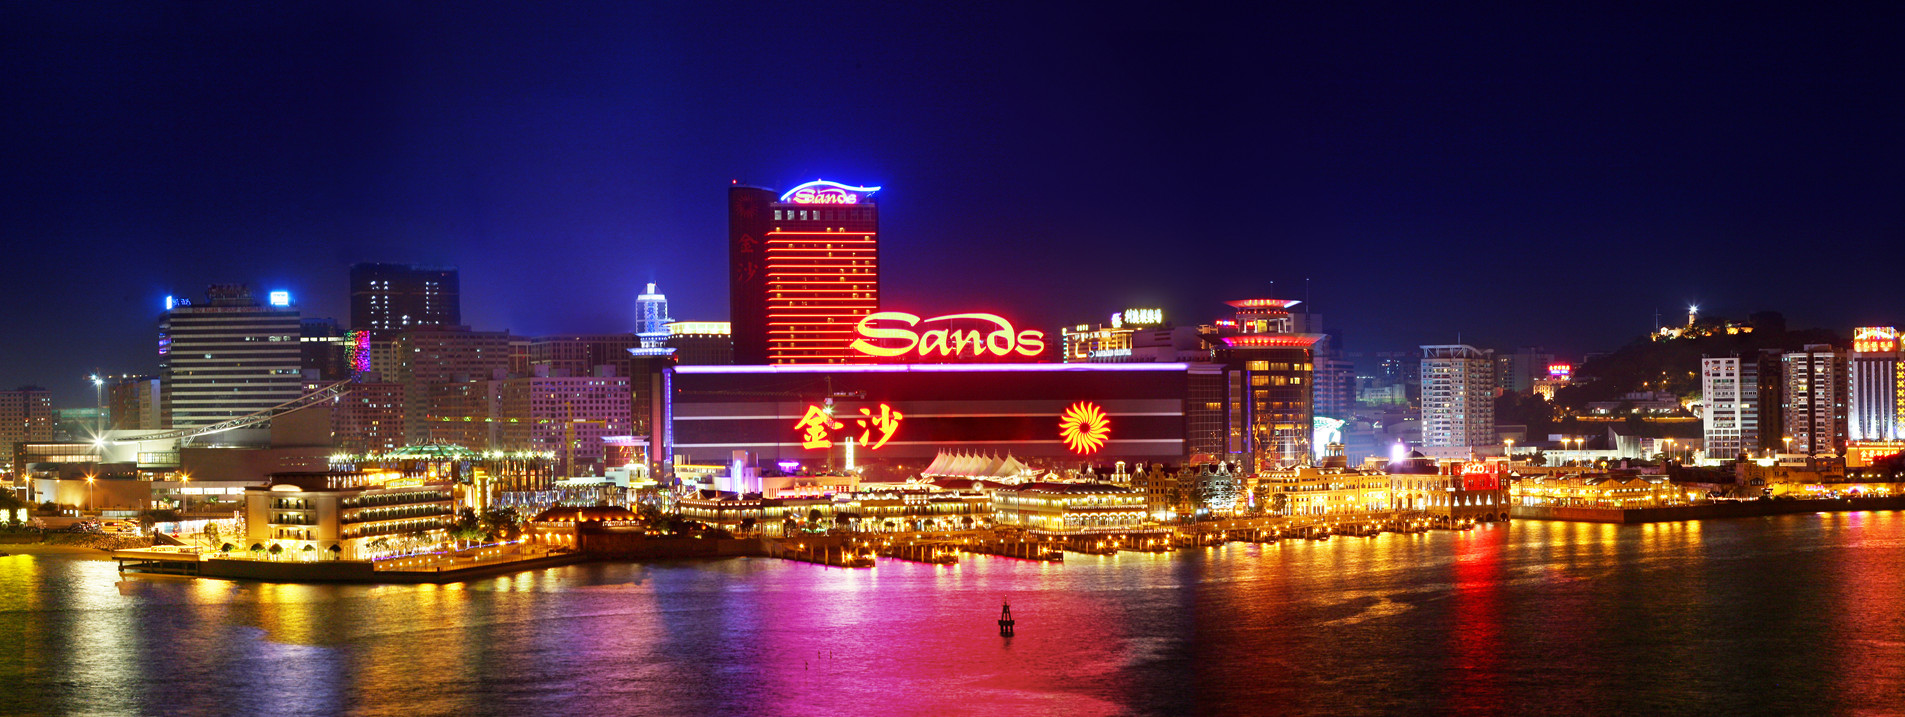 Sands Macao | Sands China Ltd